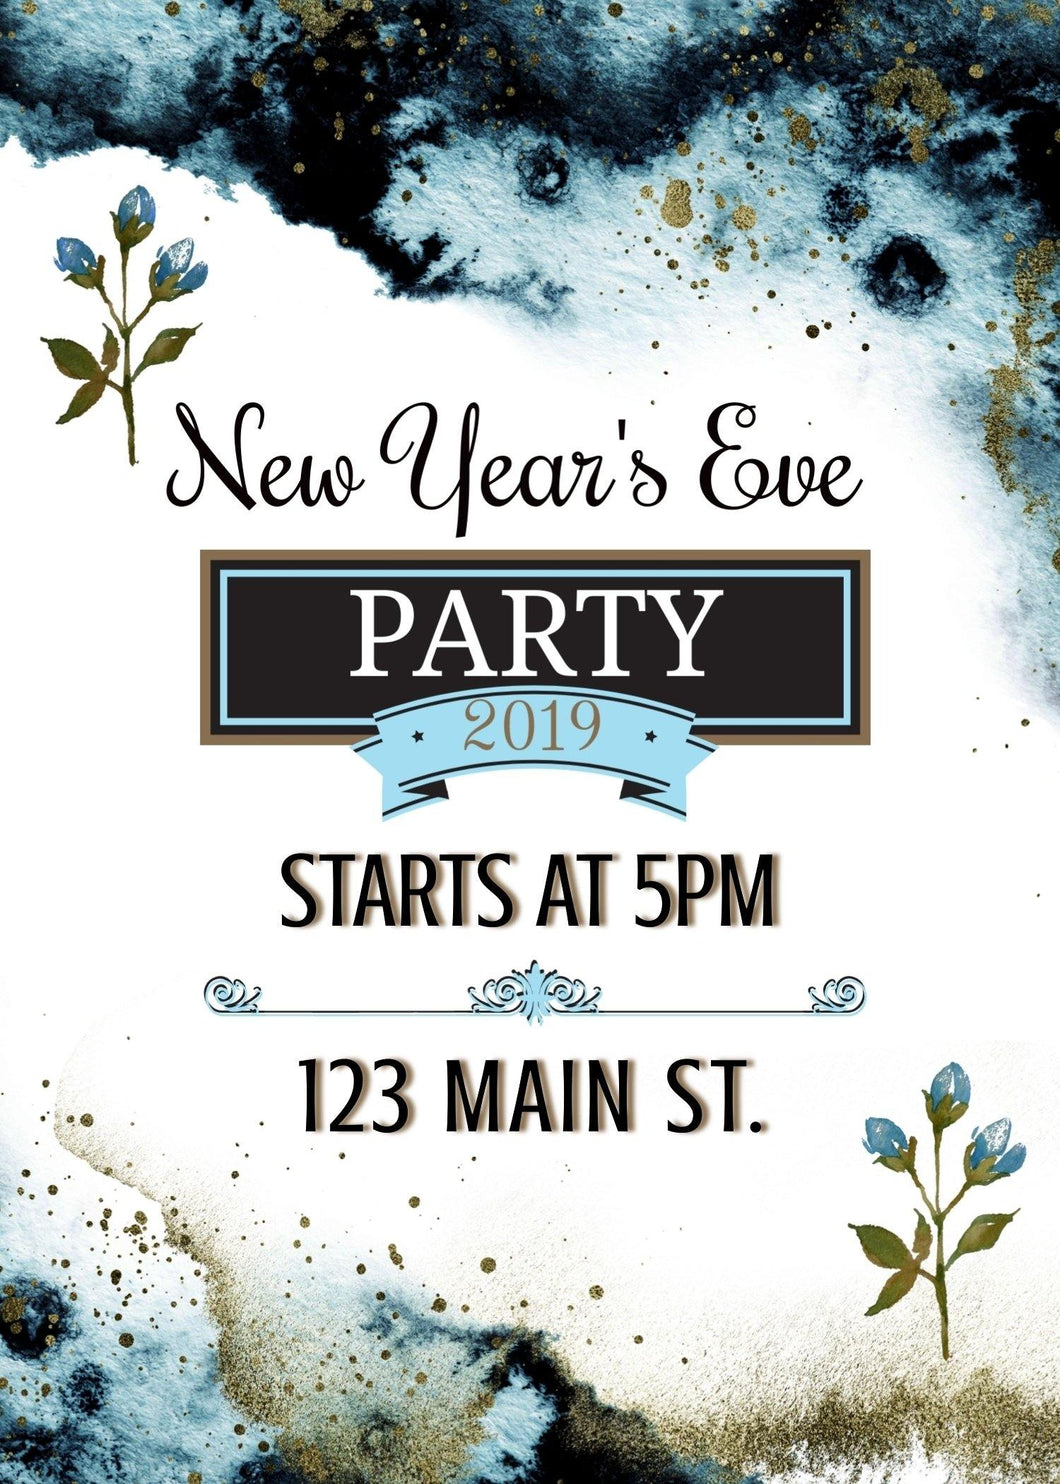 New Year's Eve Party Invite -Shop for New Year's Eve Party Invite